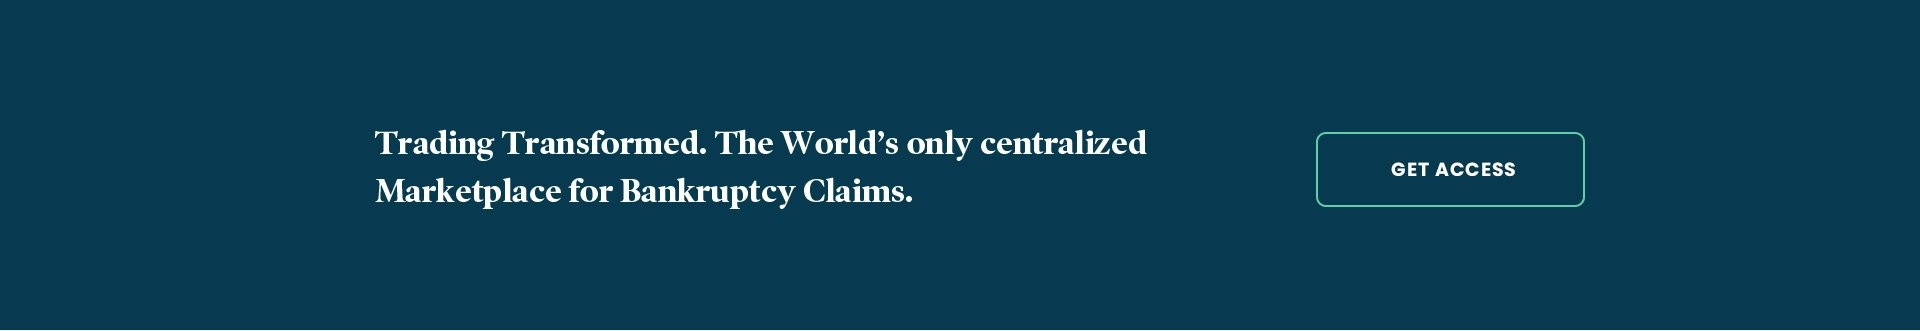 XCLAIM-the-world's-largest-marketplace-for-bankruptcy-claims-trading